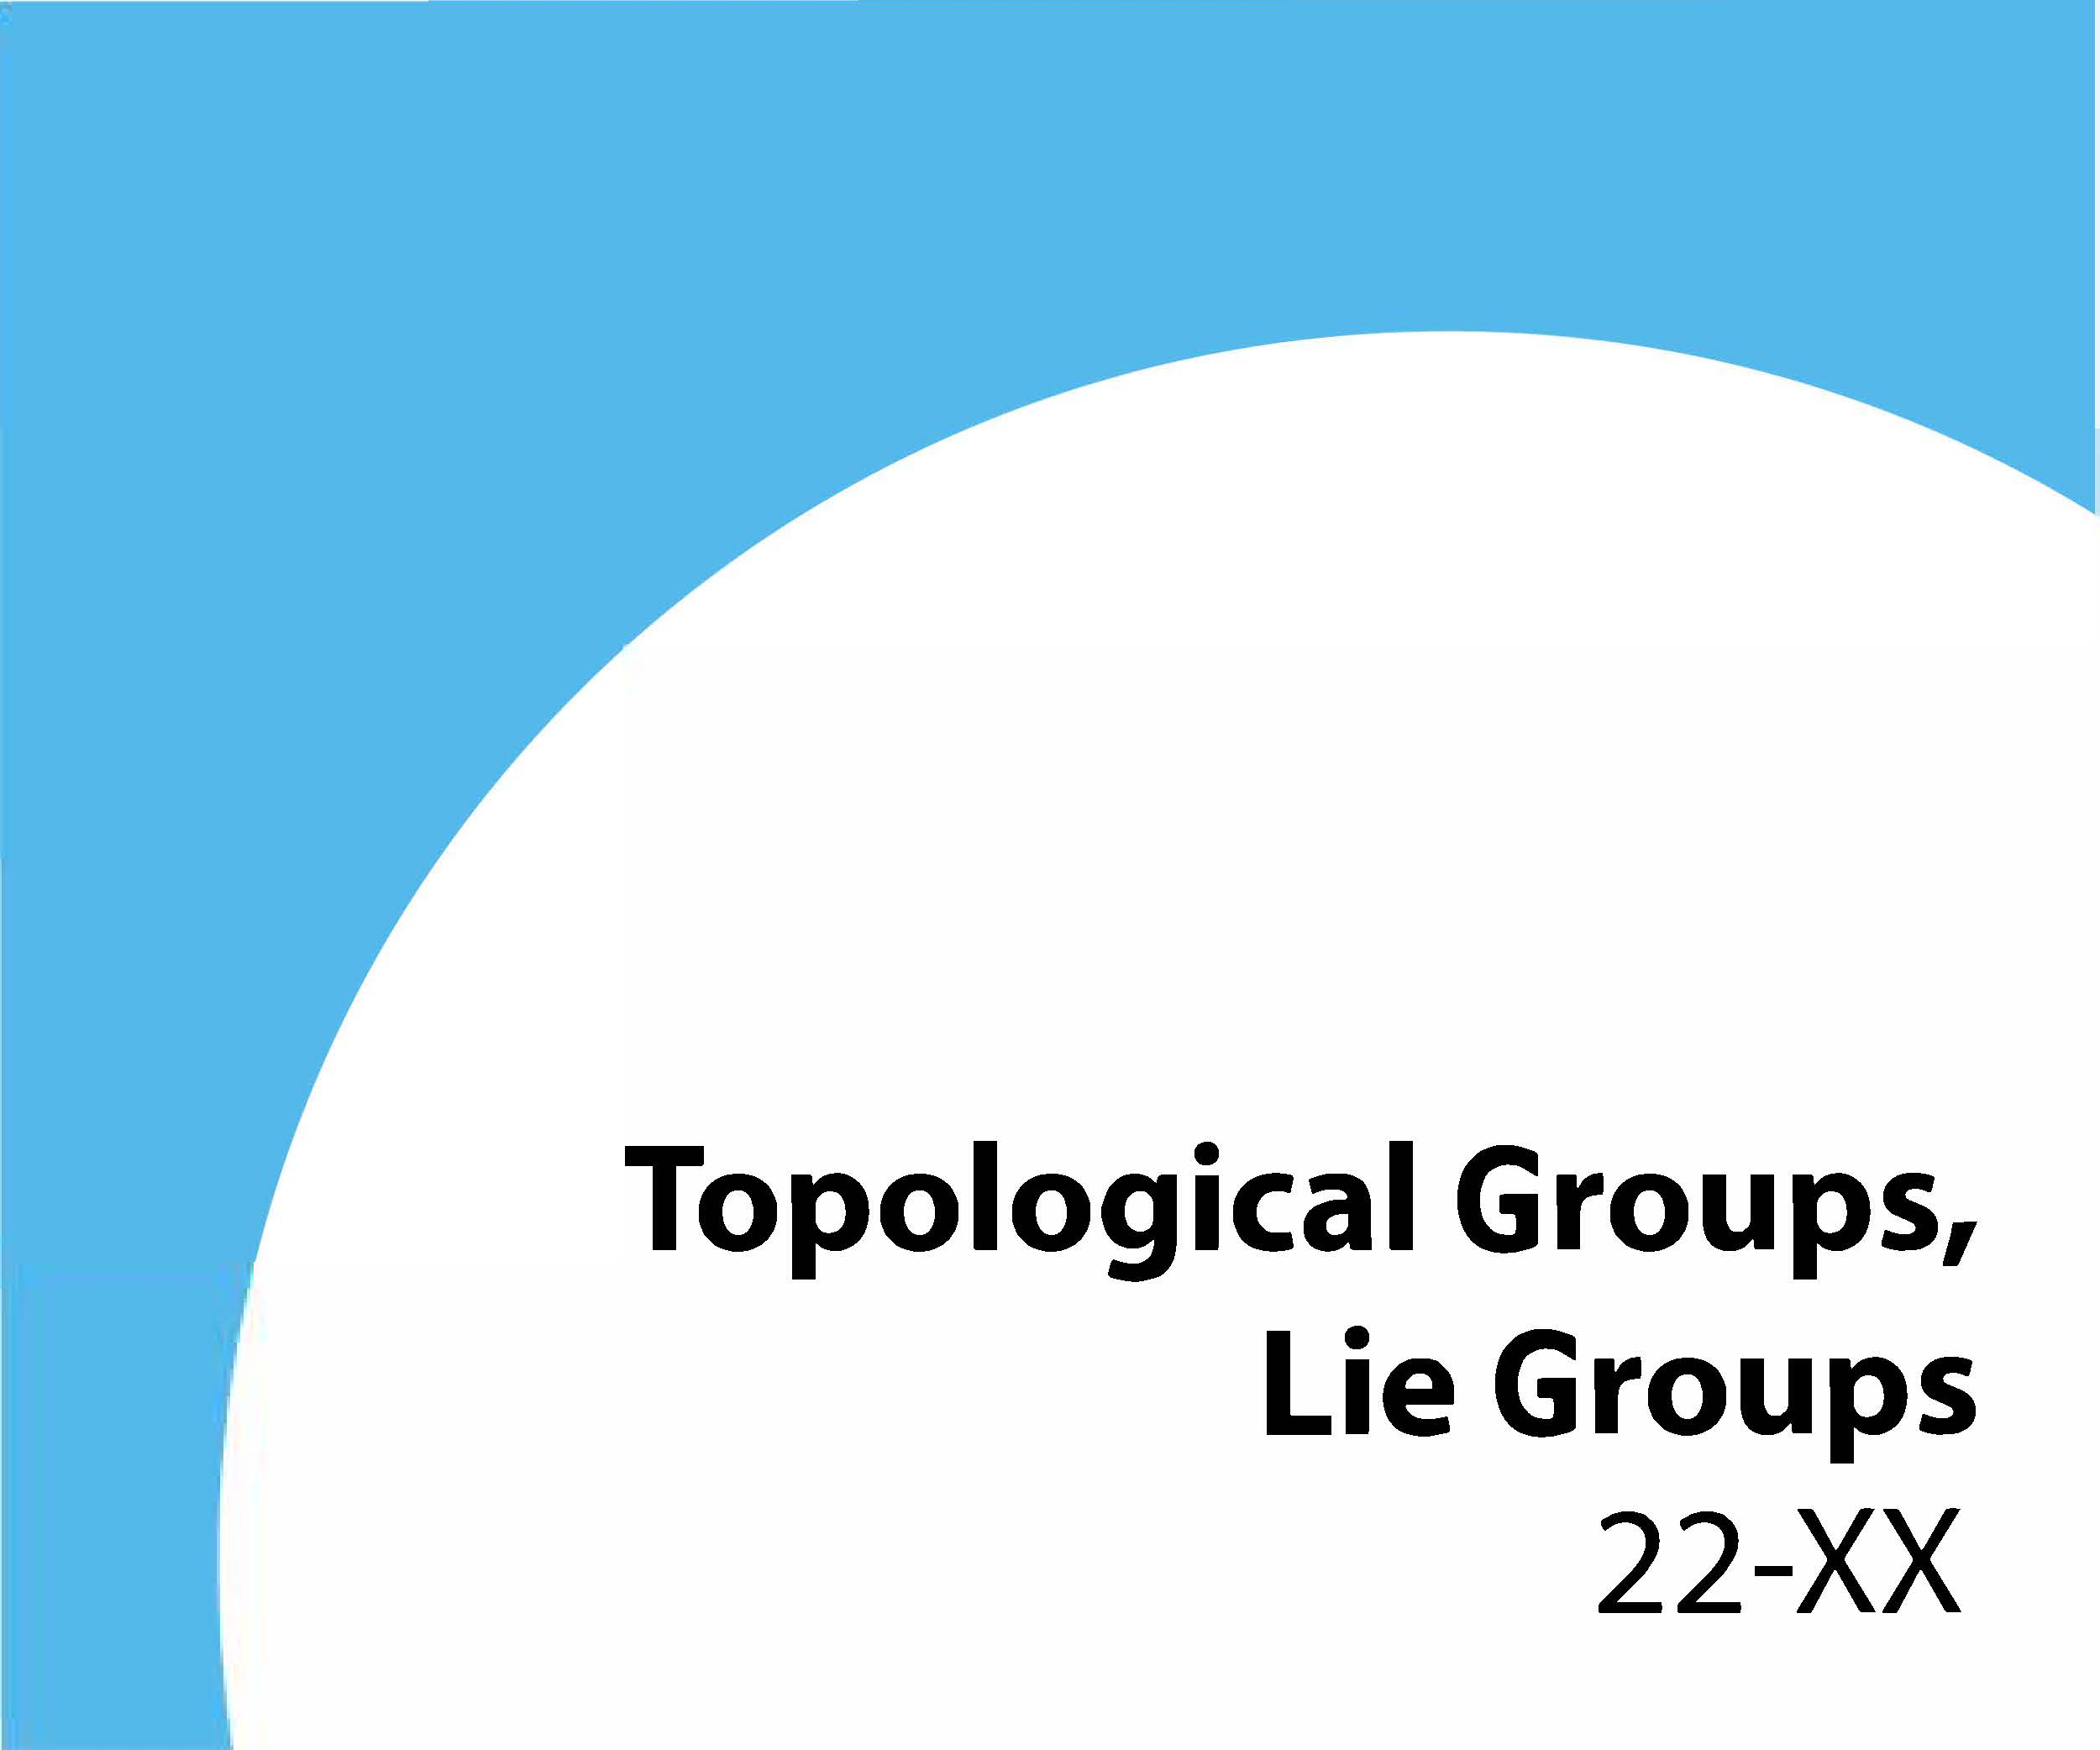 22-xx Topological groups, Lie groups